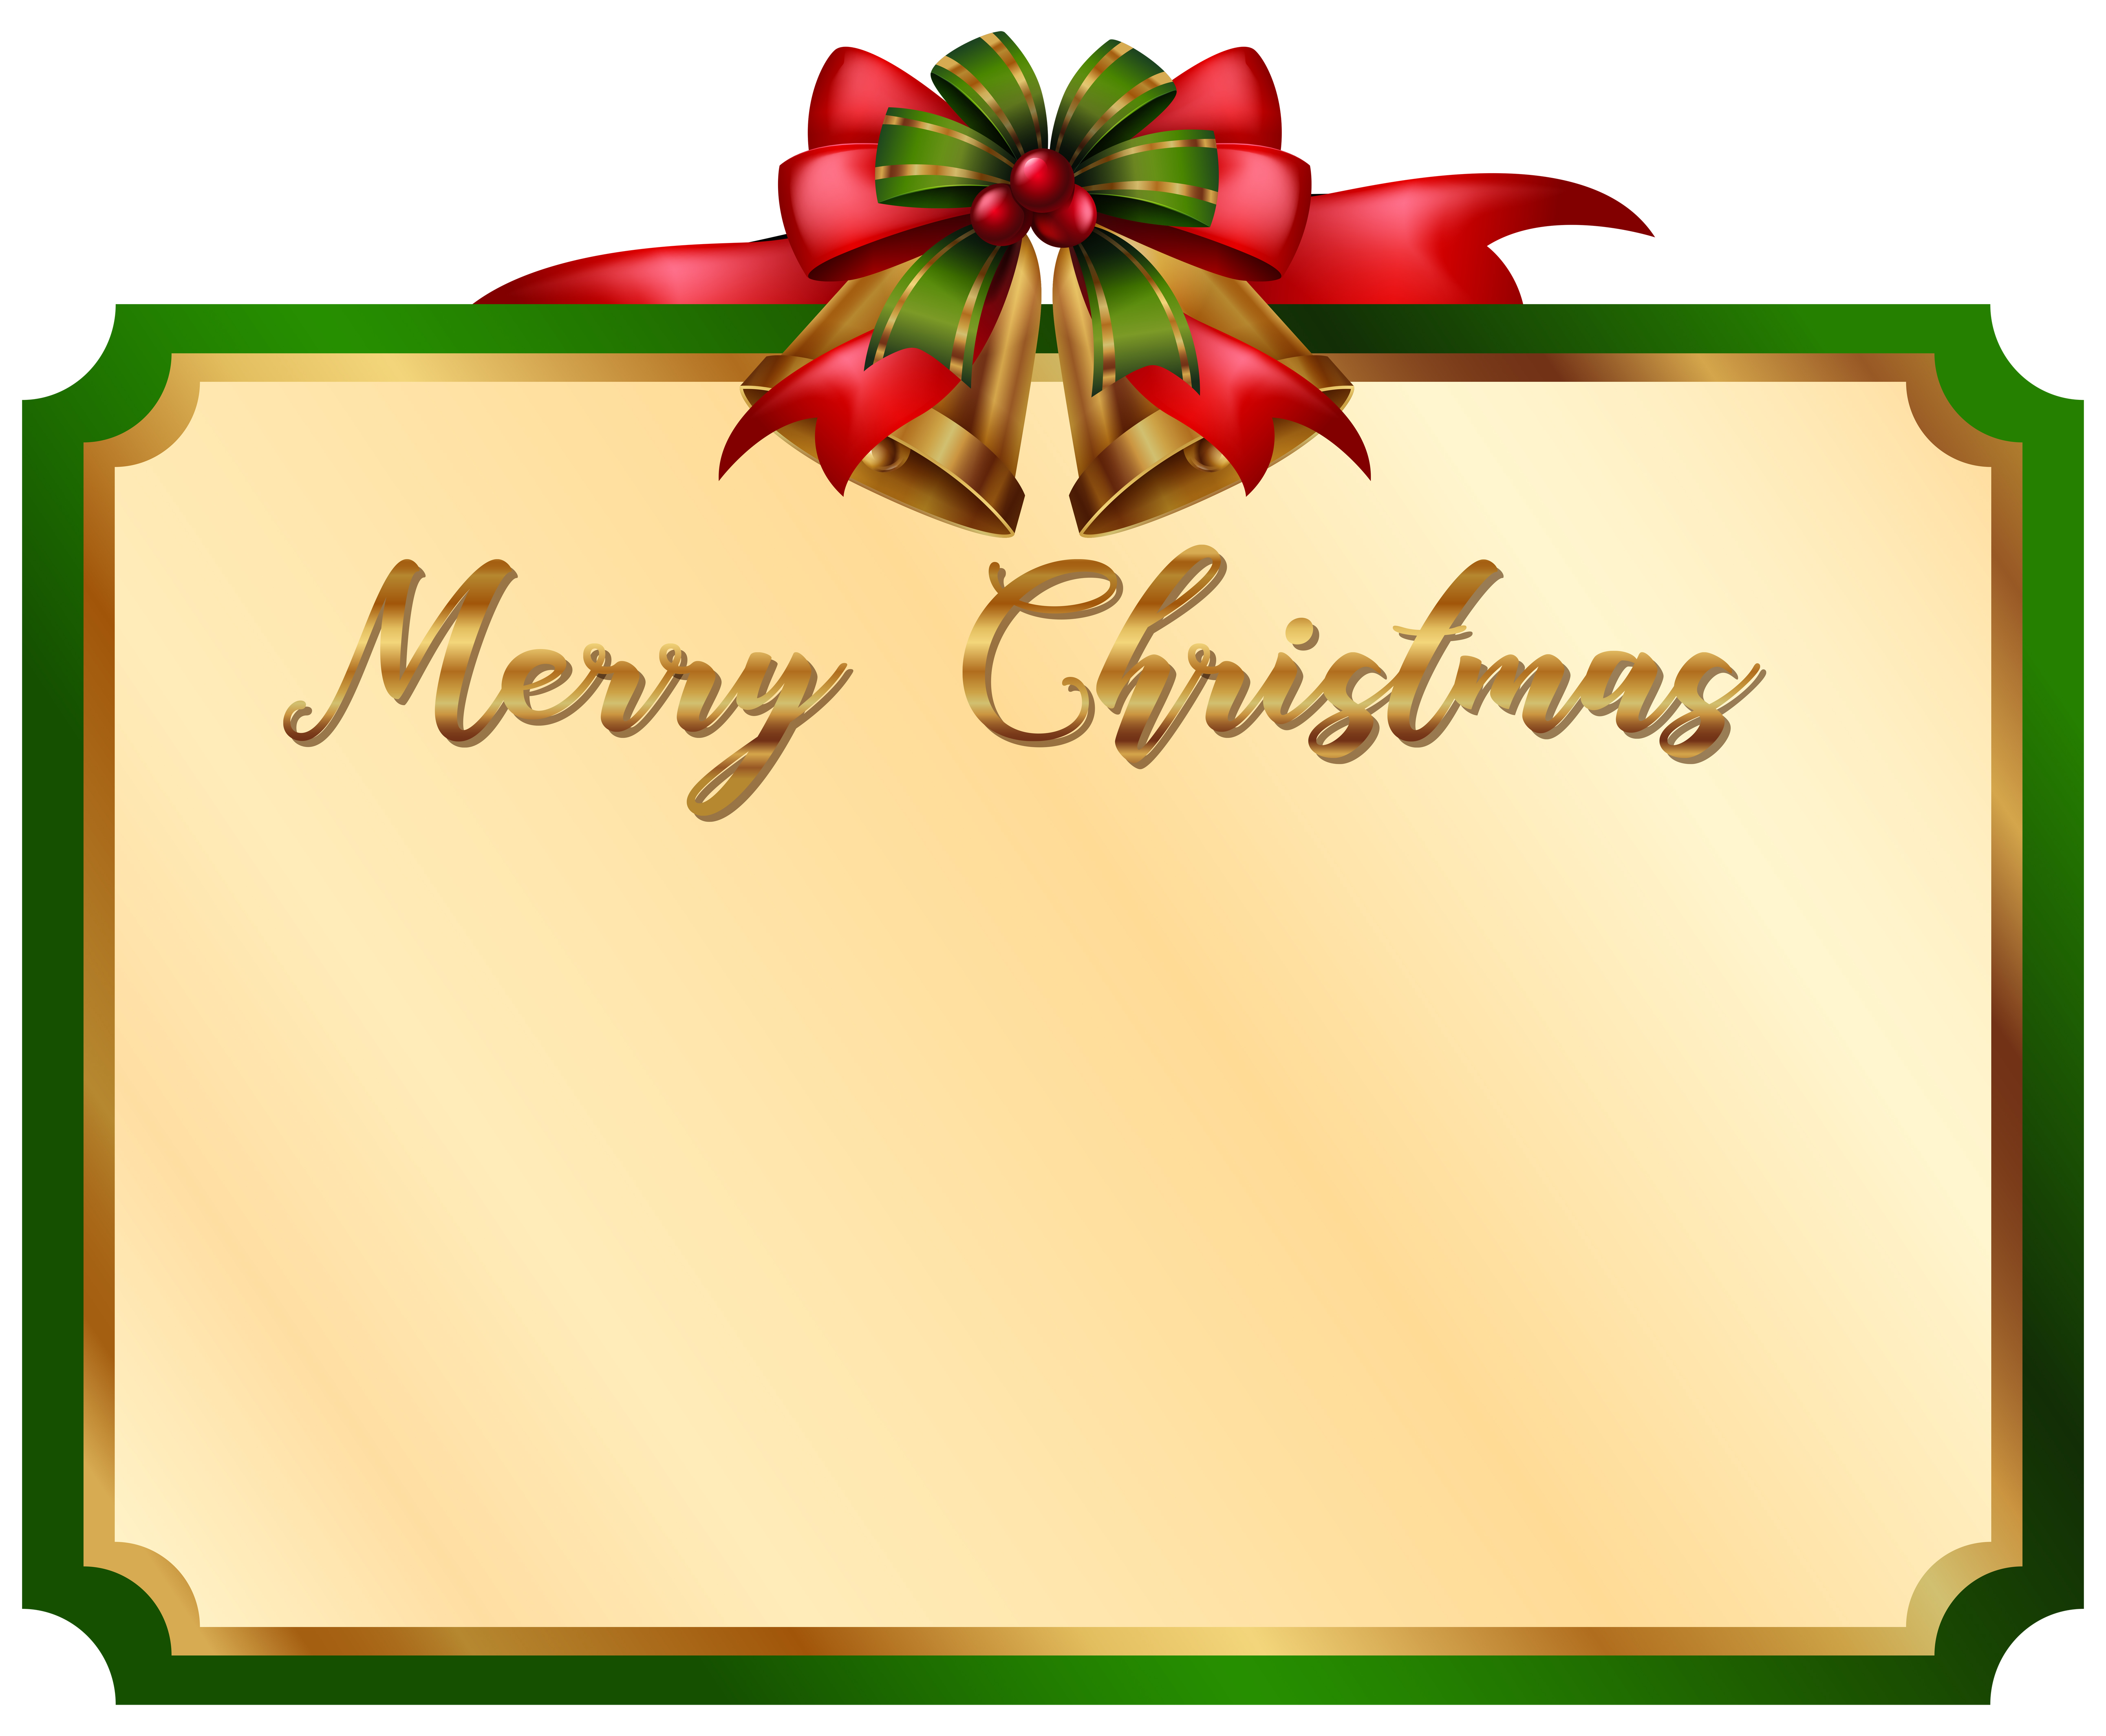 merry christmas card with green border 594430  download